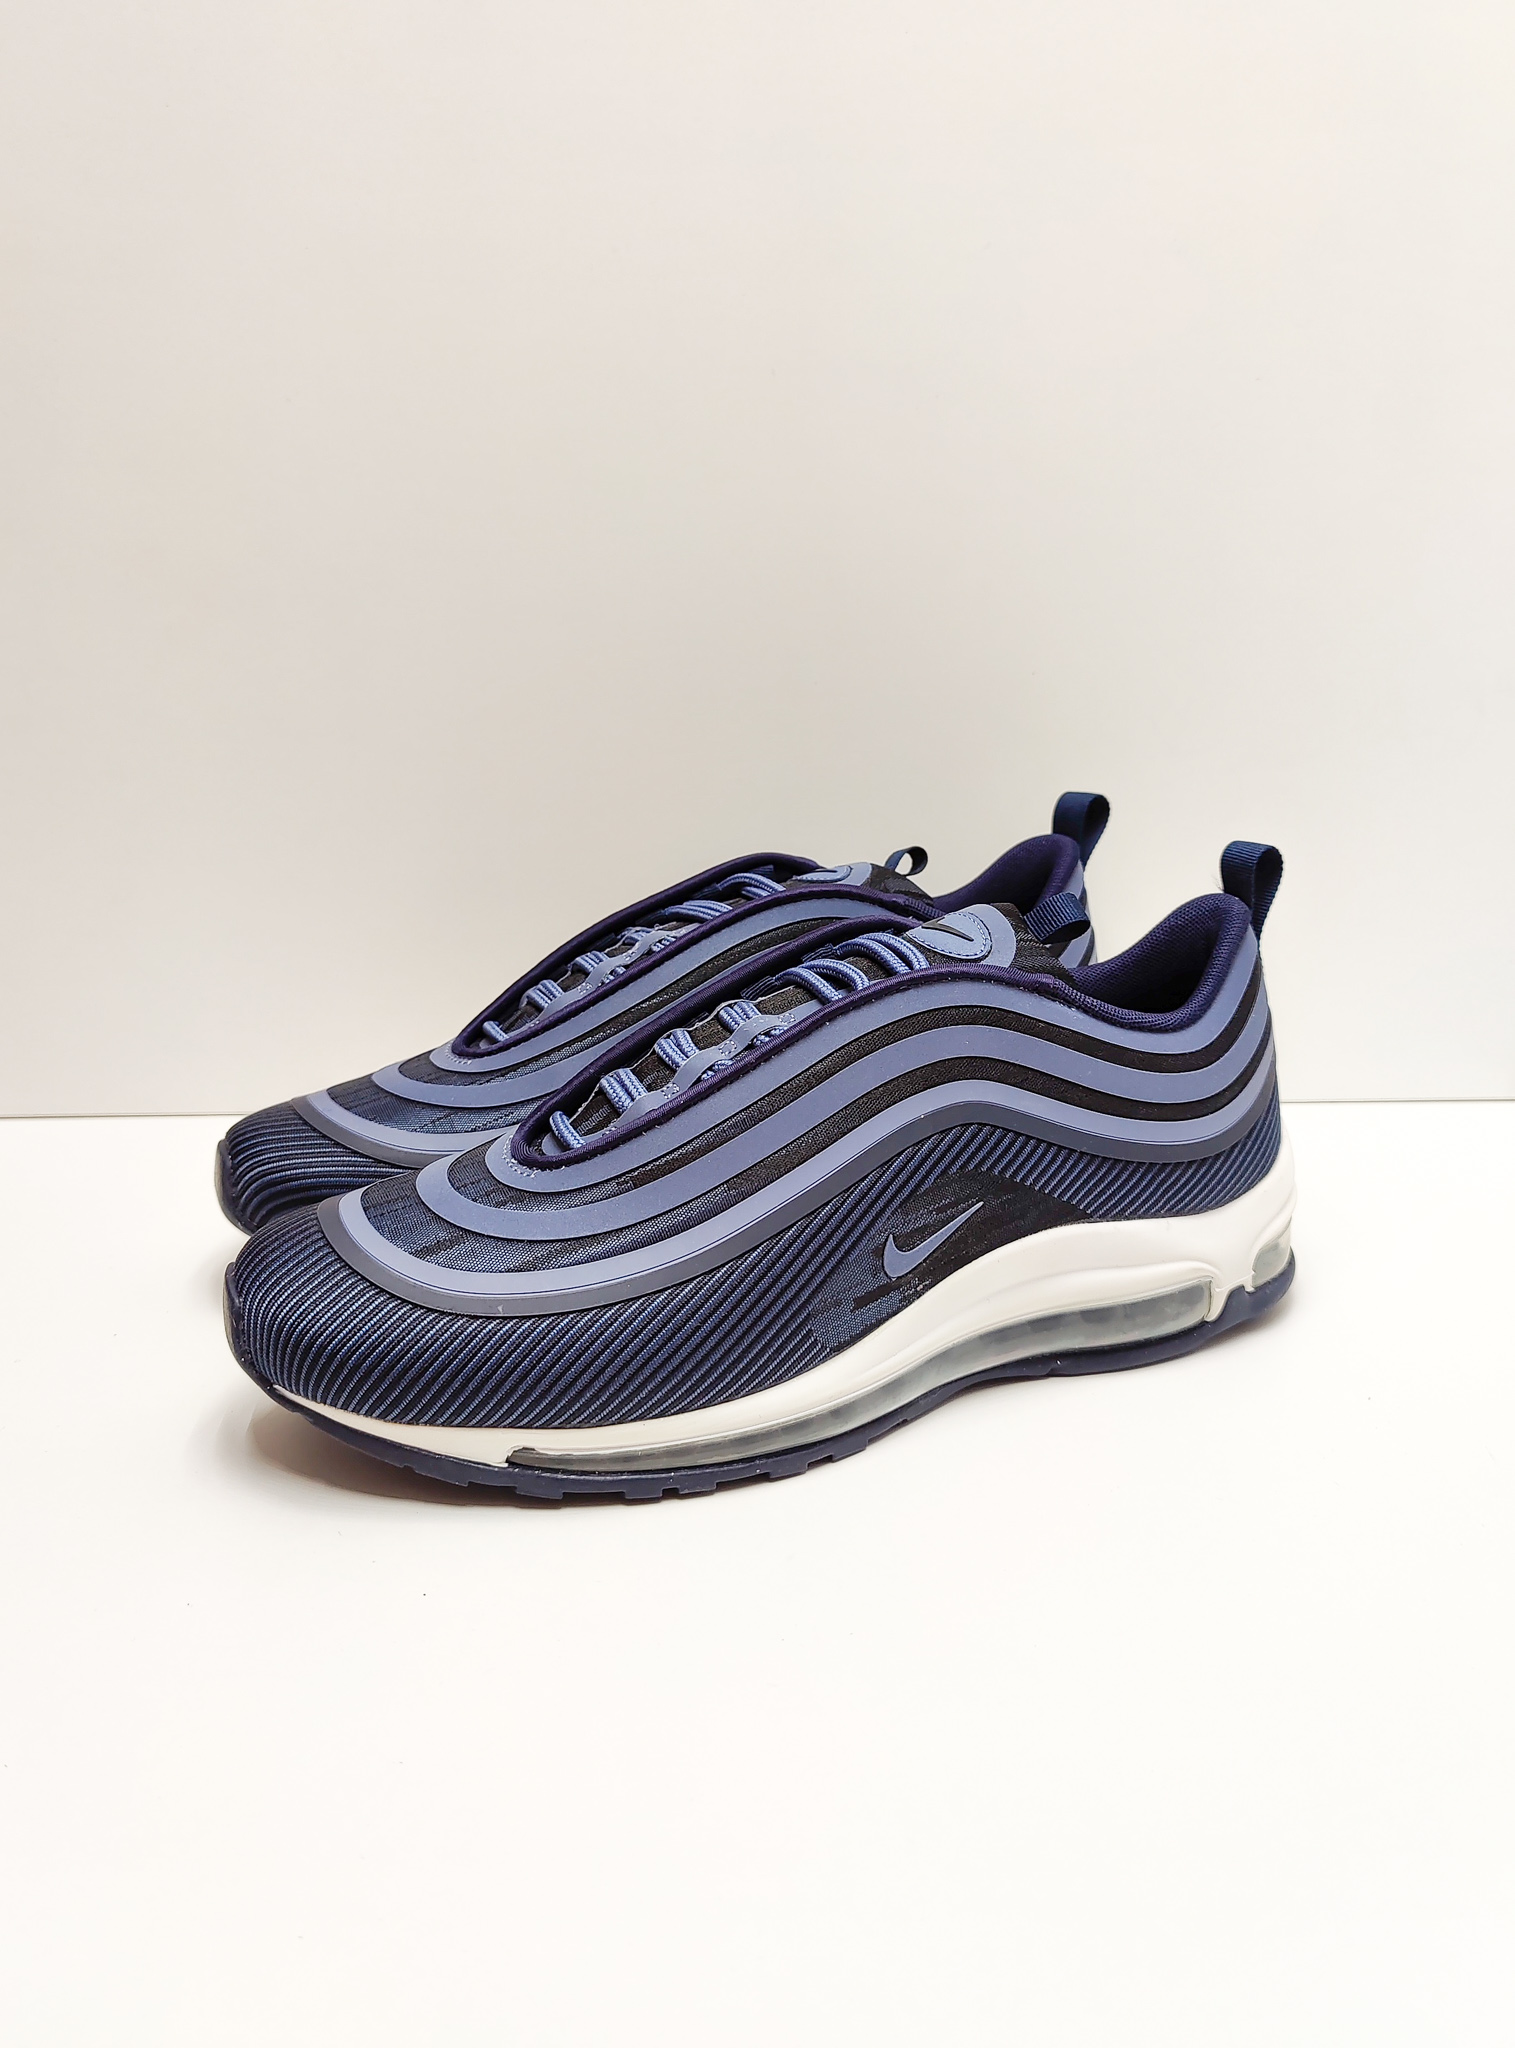 Nike Air Max 97 Ultra 17 Obsidian